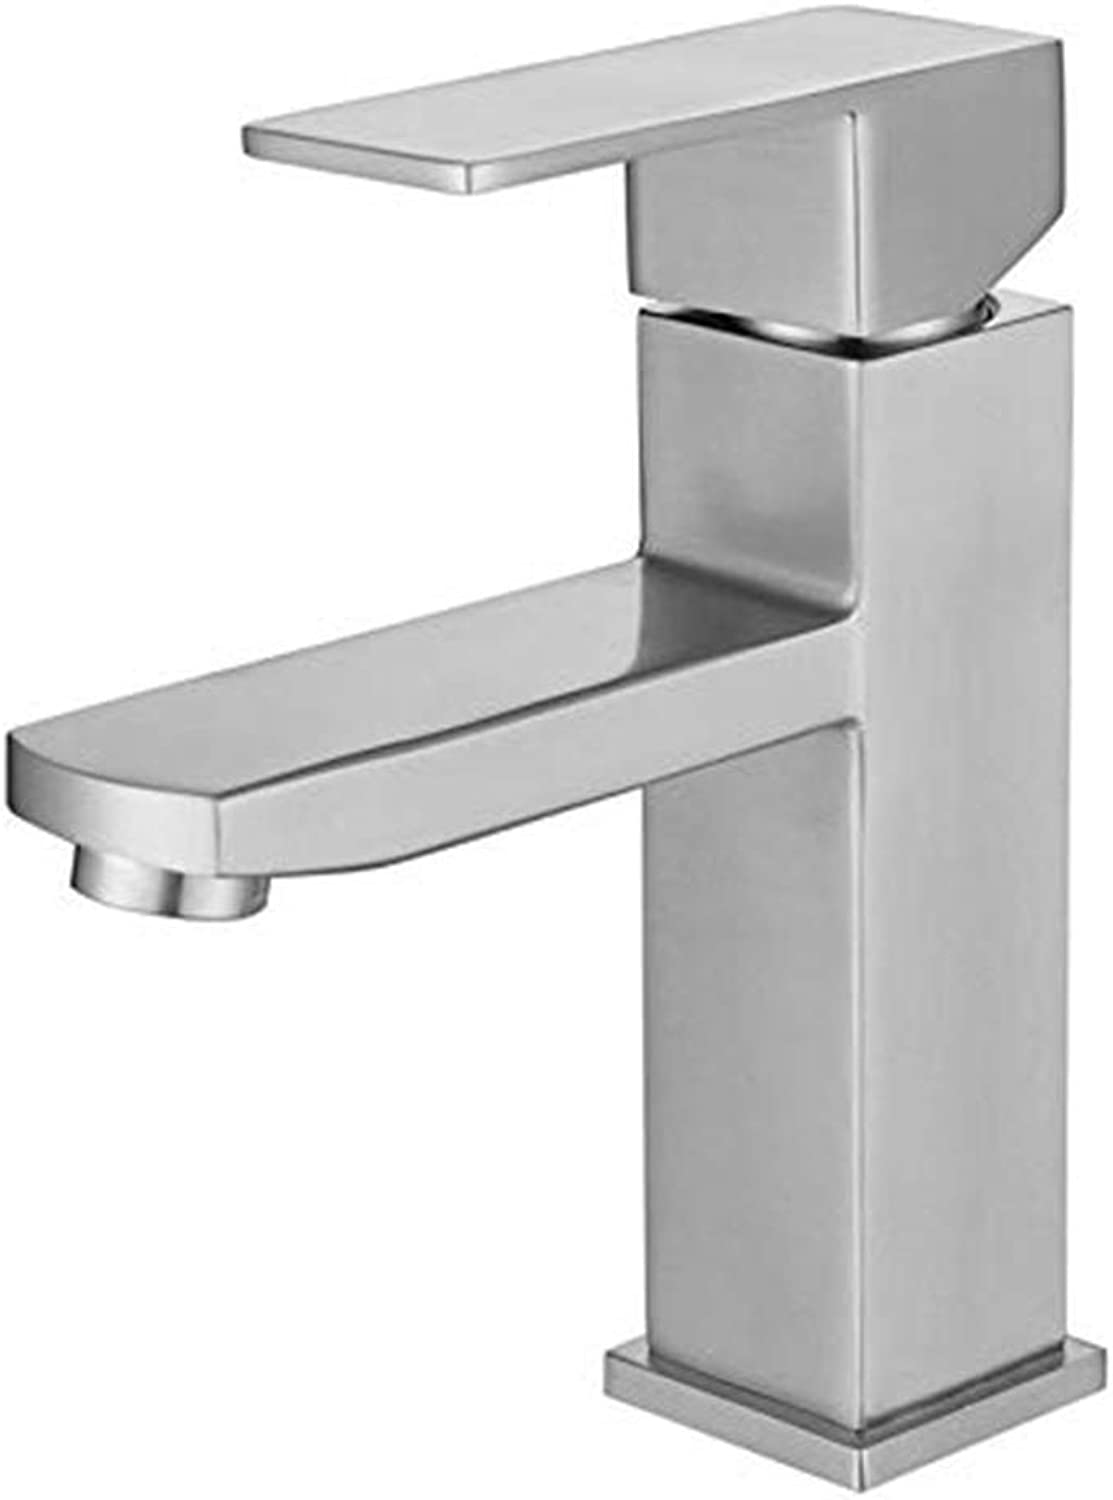 Chrome-Plated Adjustable Temperature-Sensitive Led Faucet304 Bathroom Stainless Steel Hot and Cold Toilet Bathroom Above Counter Basin Stainless Steel Basin